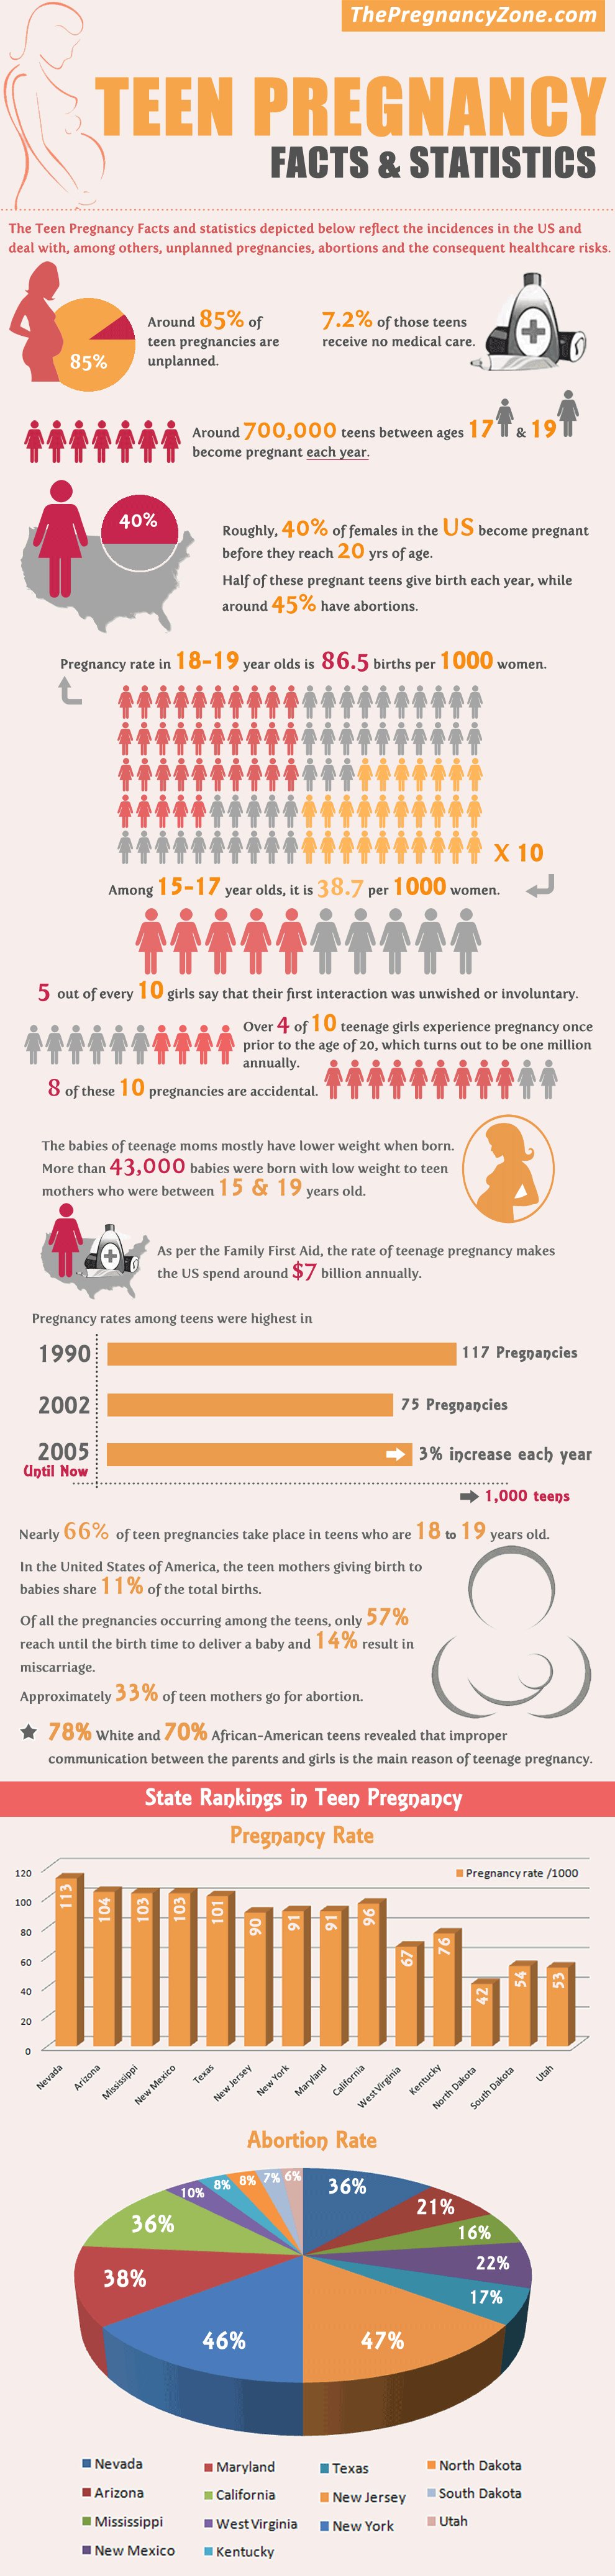 Teen Pregnancy Facts & Statistics